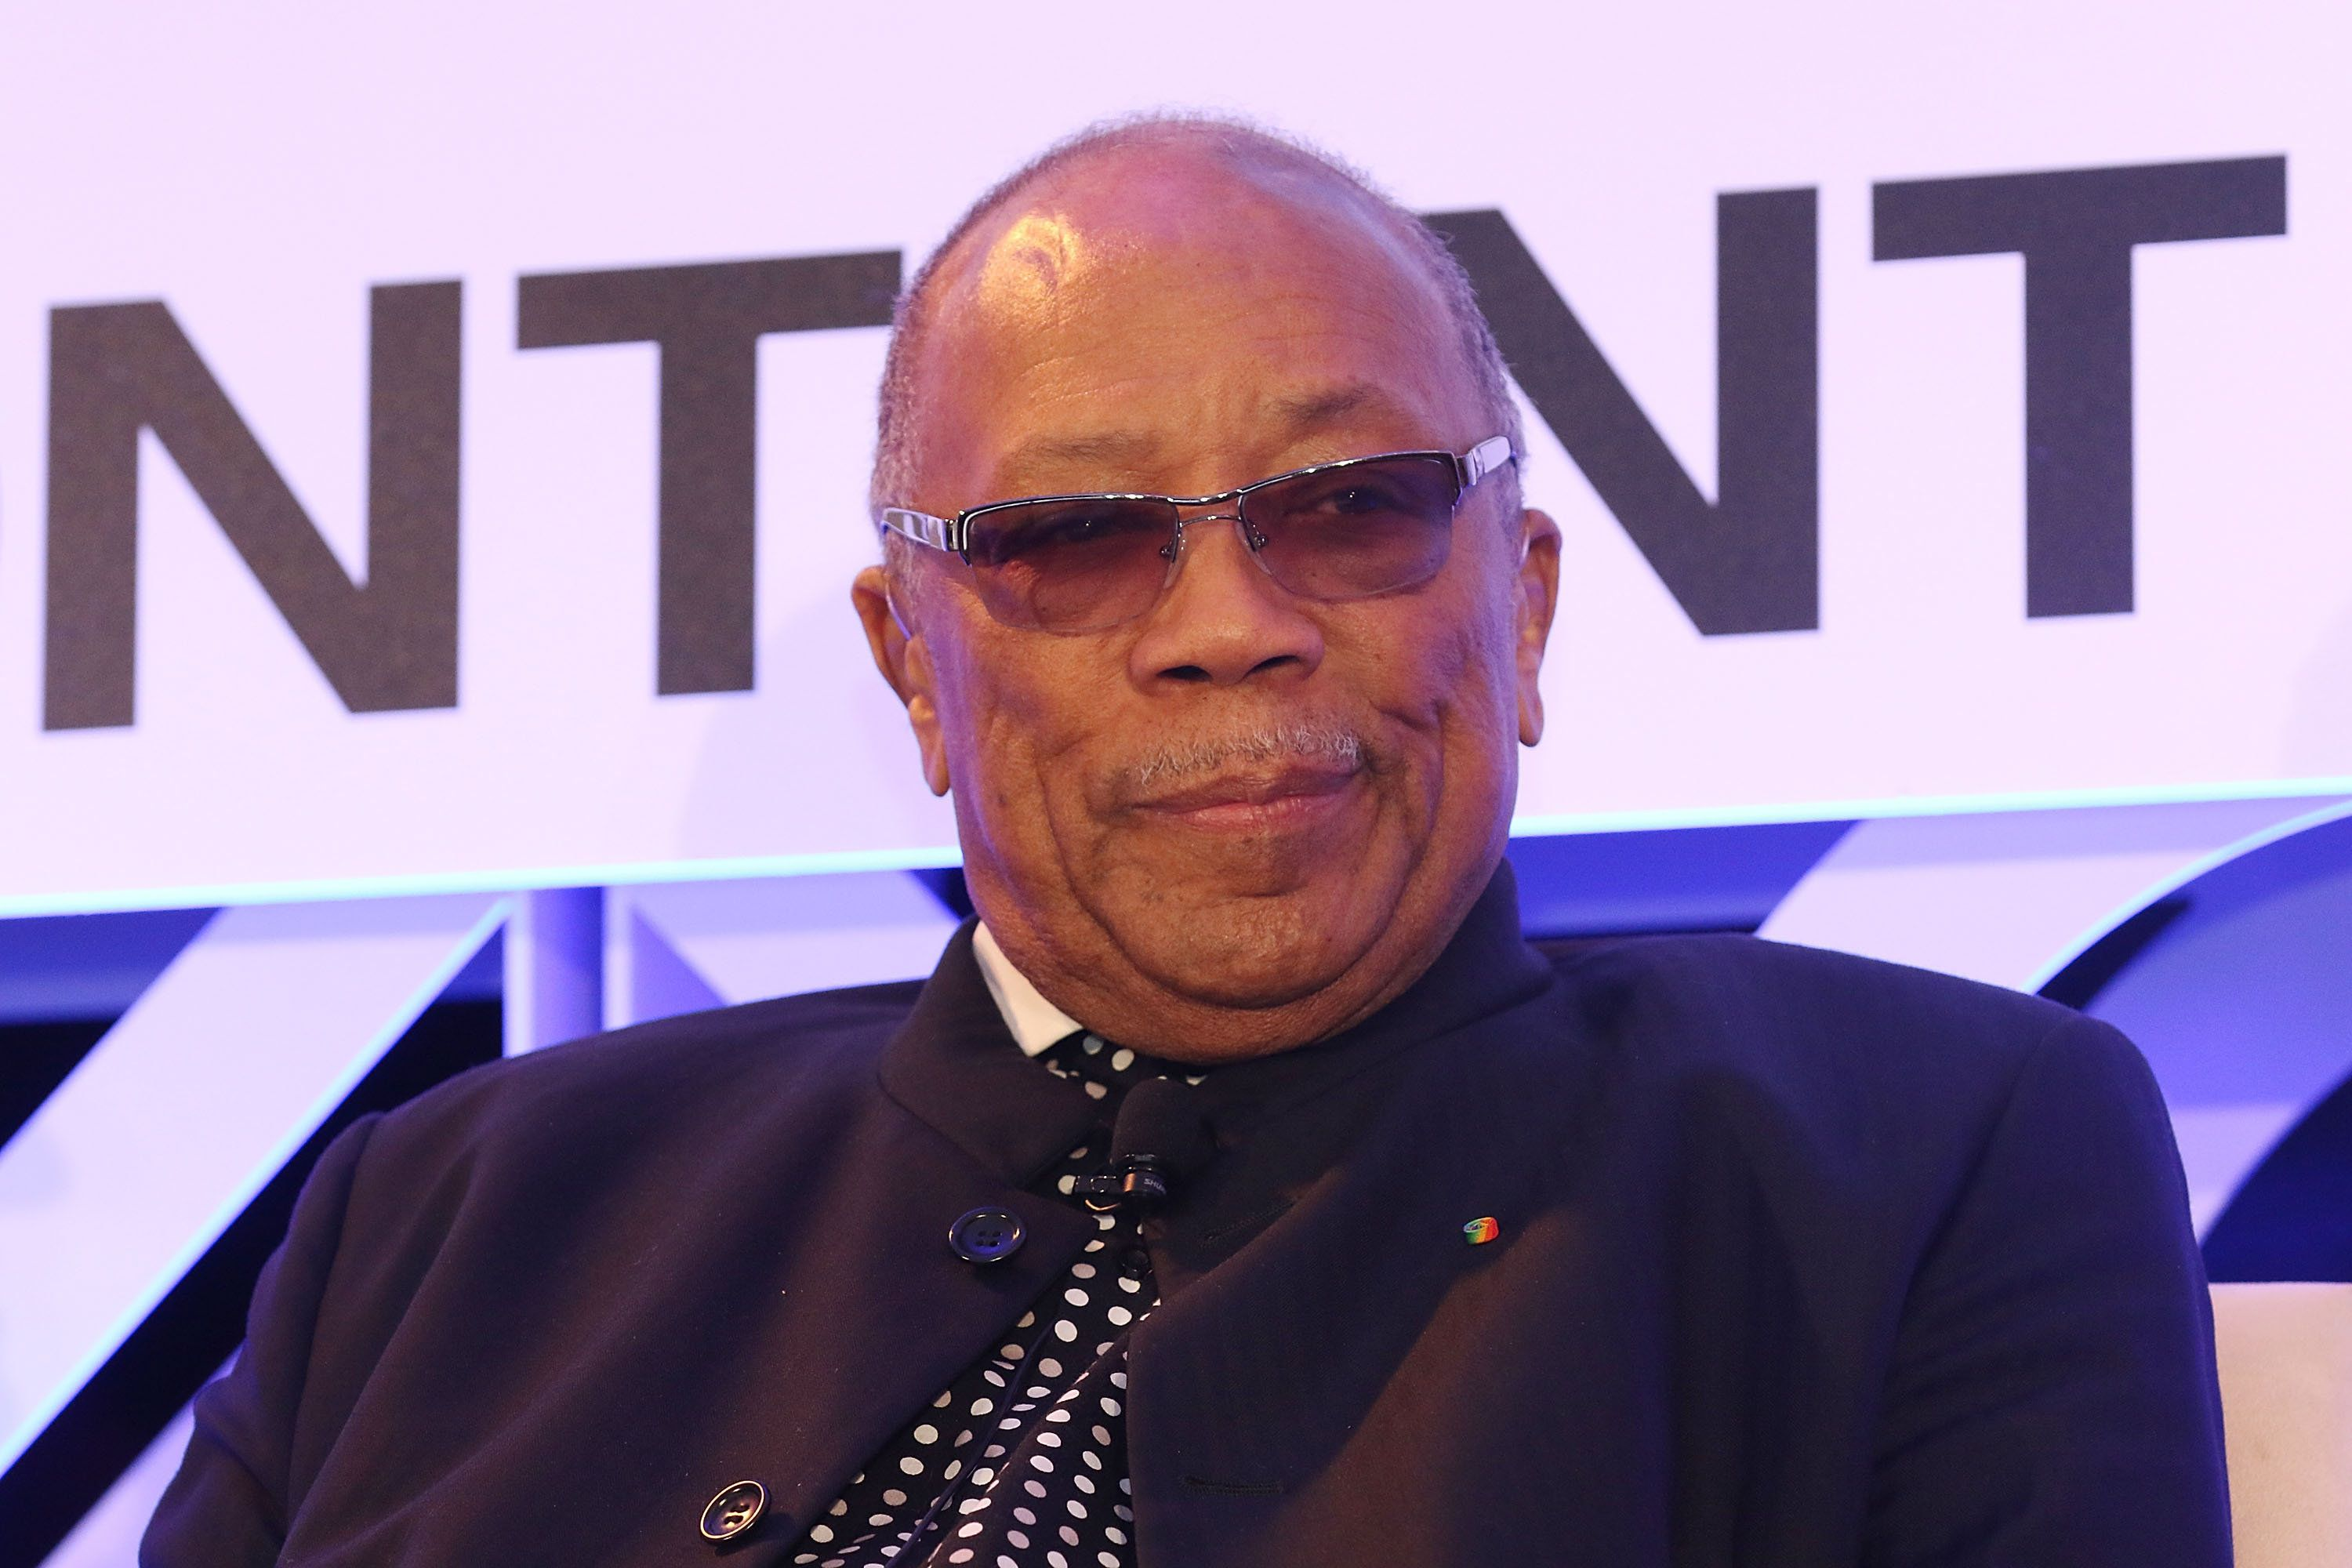 MIAMI BEACH, FL - JANUARY 20:  Quincy Jones attends  NATPE 2016 at Fontainebleau Miami Beach on January 20, 2016 in Miami Beach, Florida.  (Photo by Aaron Davidson/Getty Images)